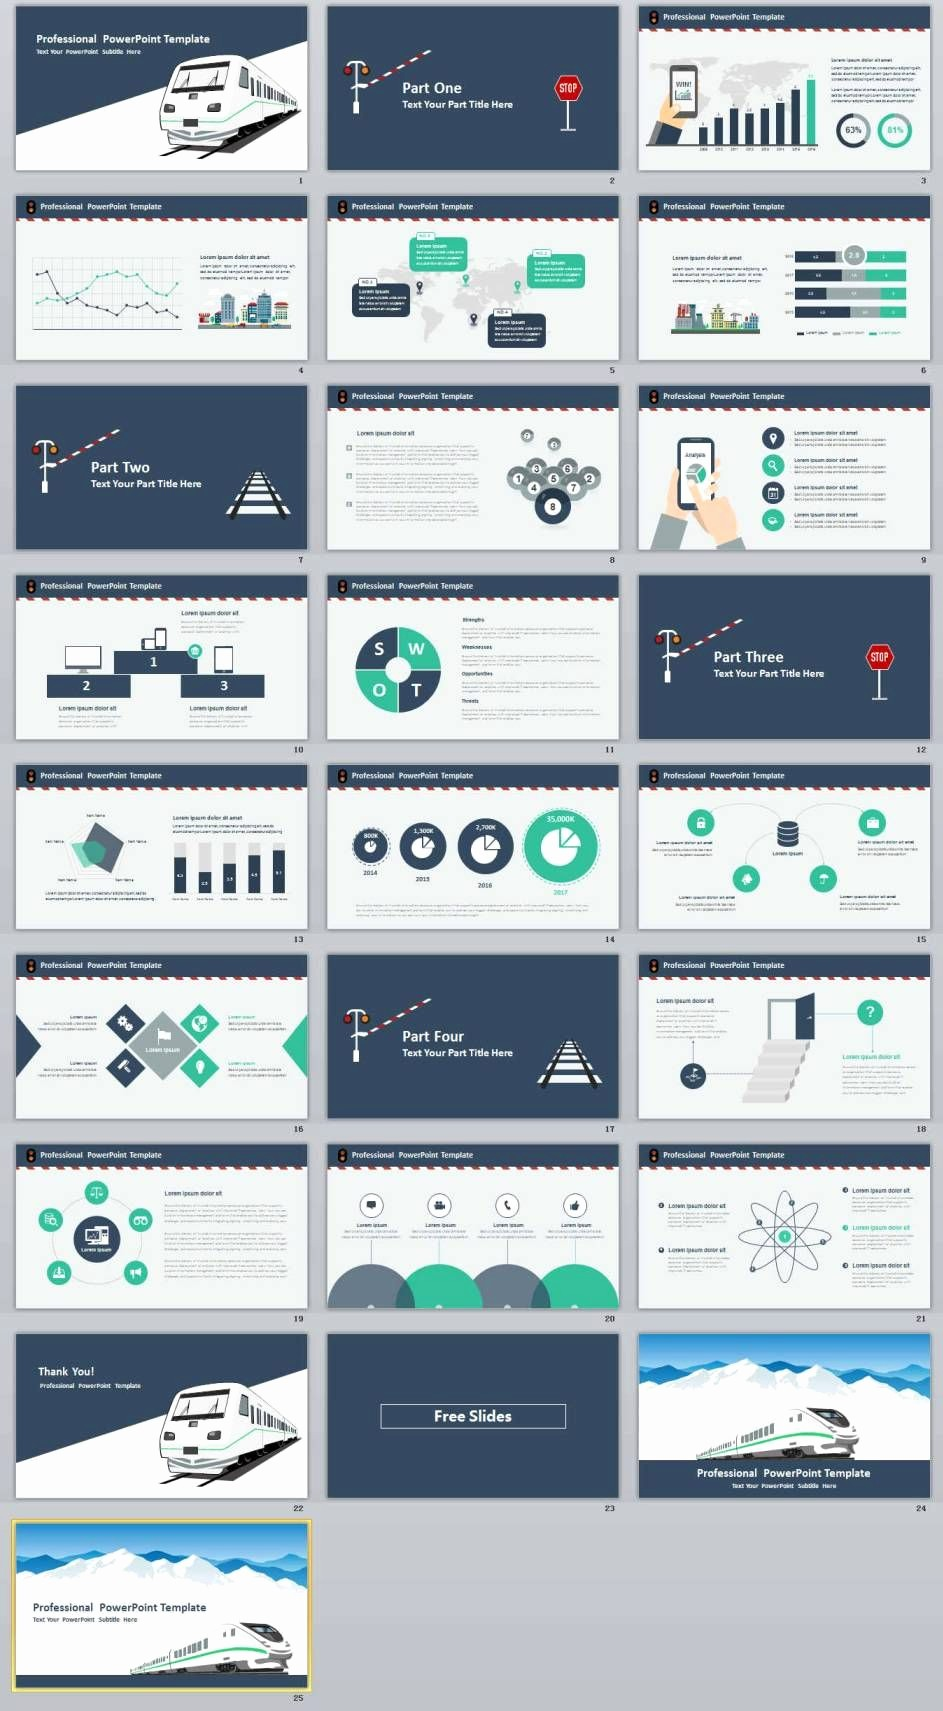 Powerpoint Slide Templates Free Download Awesome 22 Business Professional Powerpoint Templates